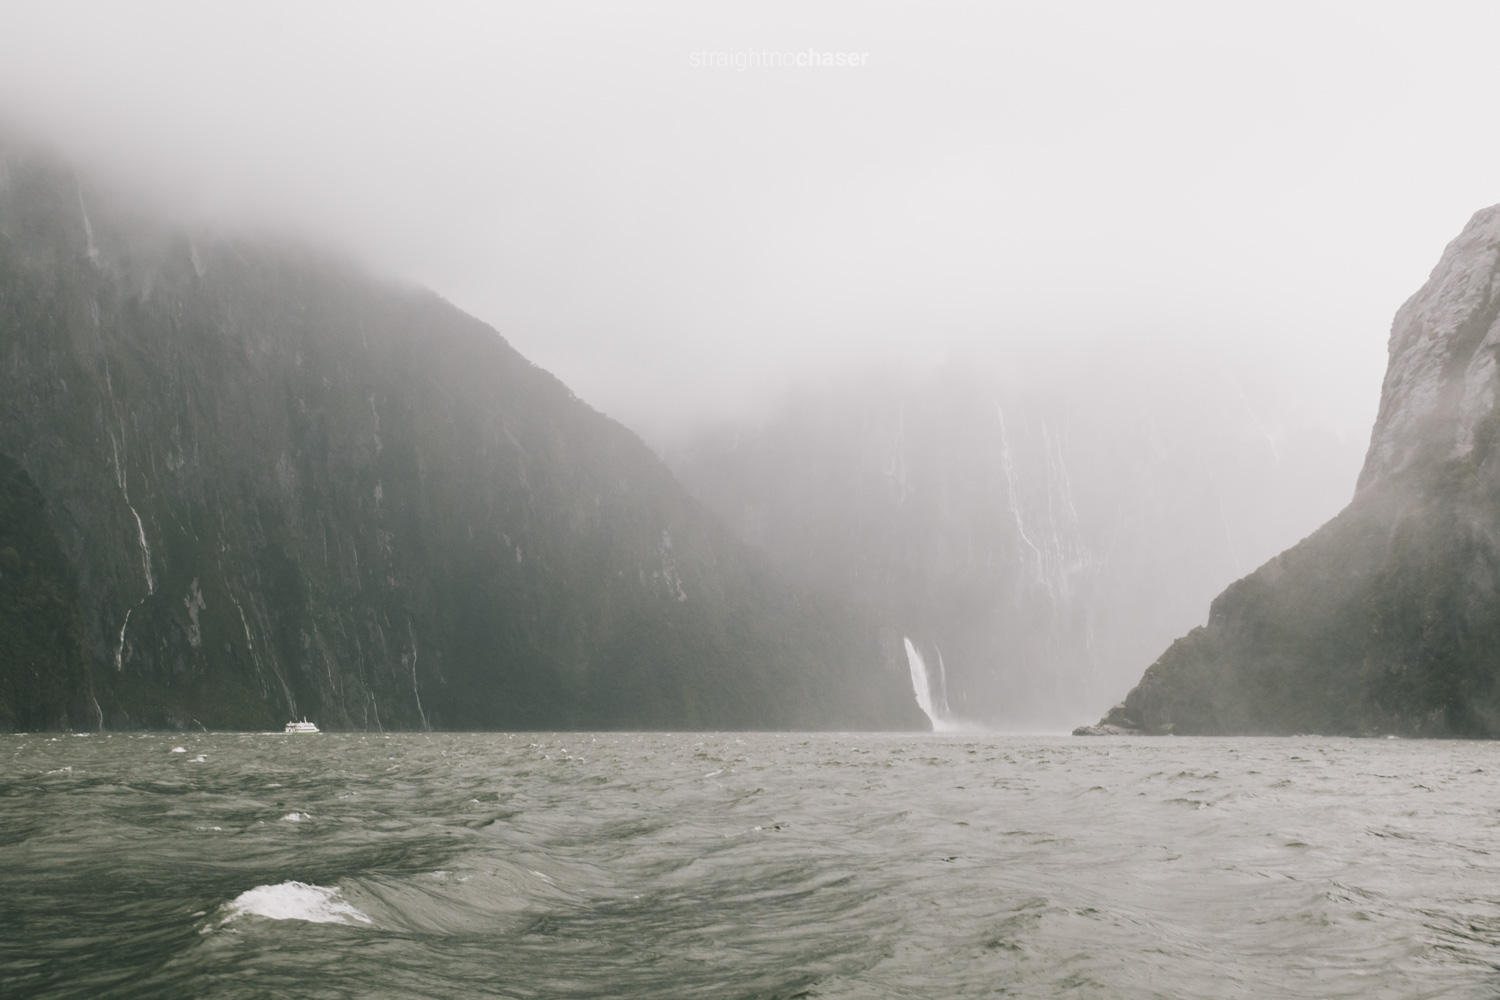 Rain, fog, and waterfalls in Milford Sounds New Zealand